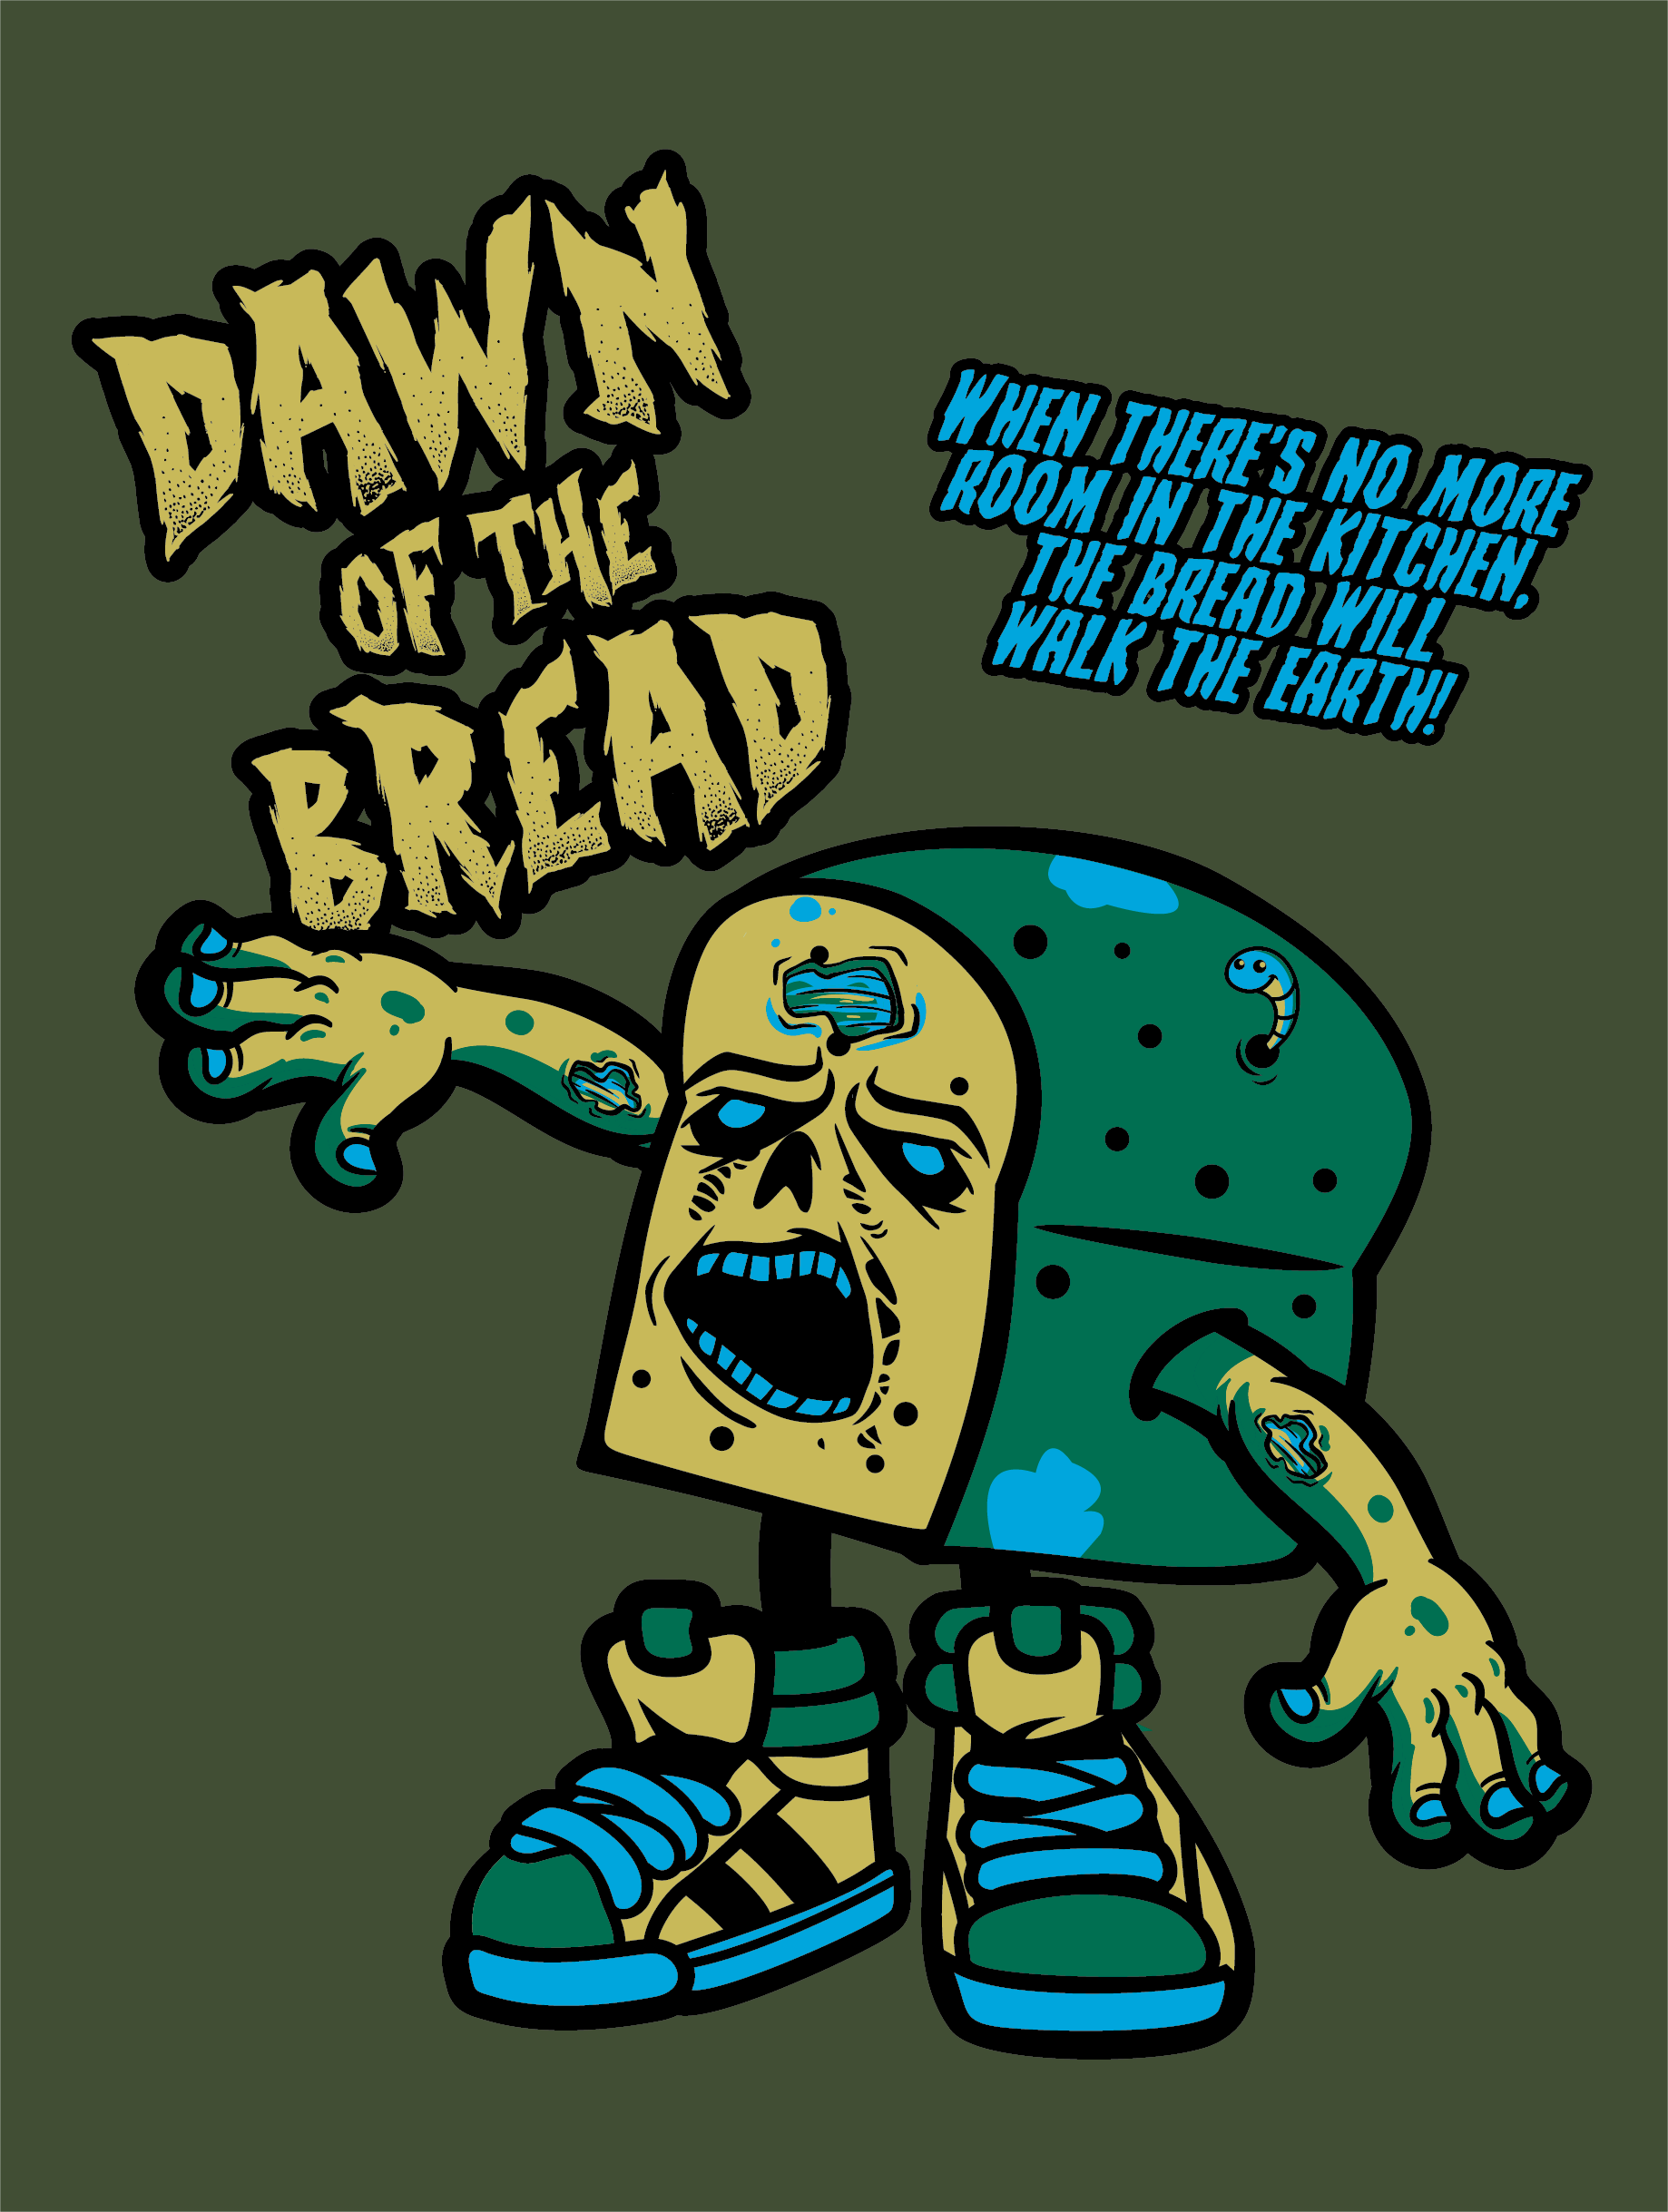 Dawn_Of_The_Bread-01.png